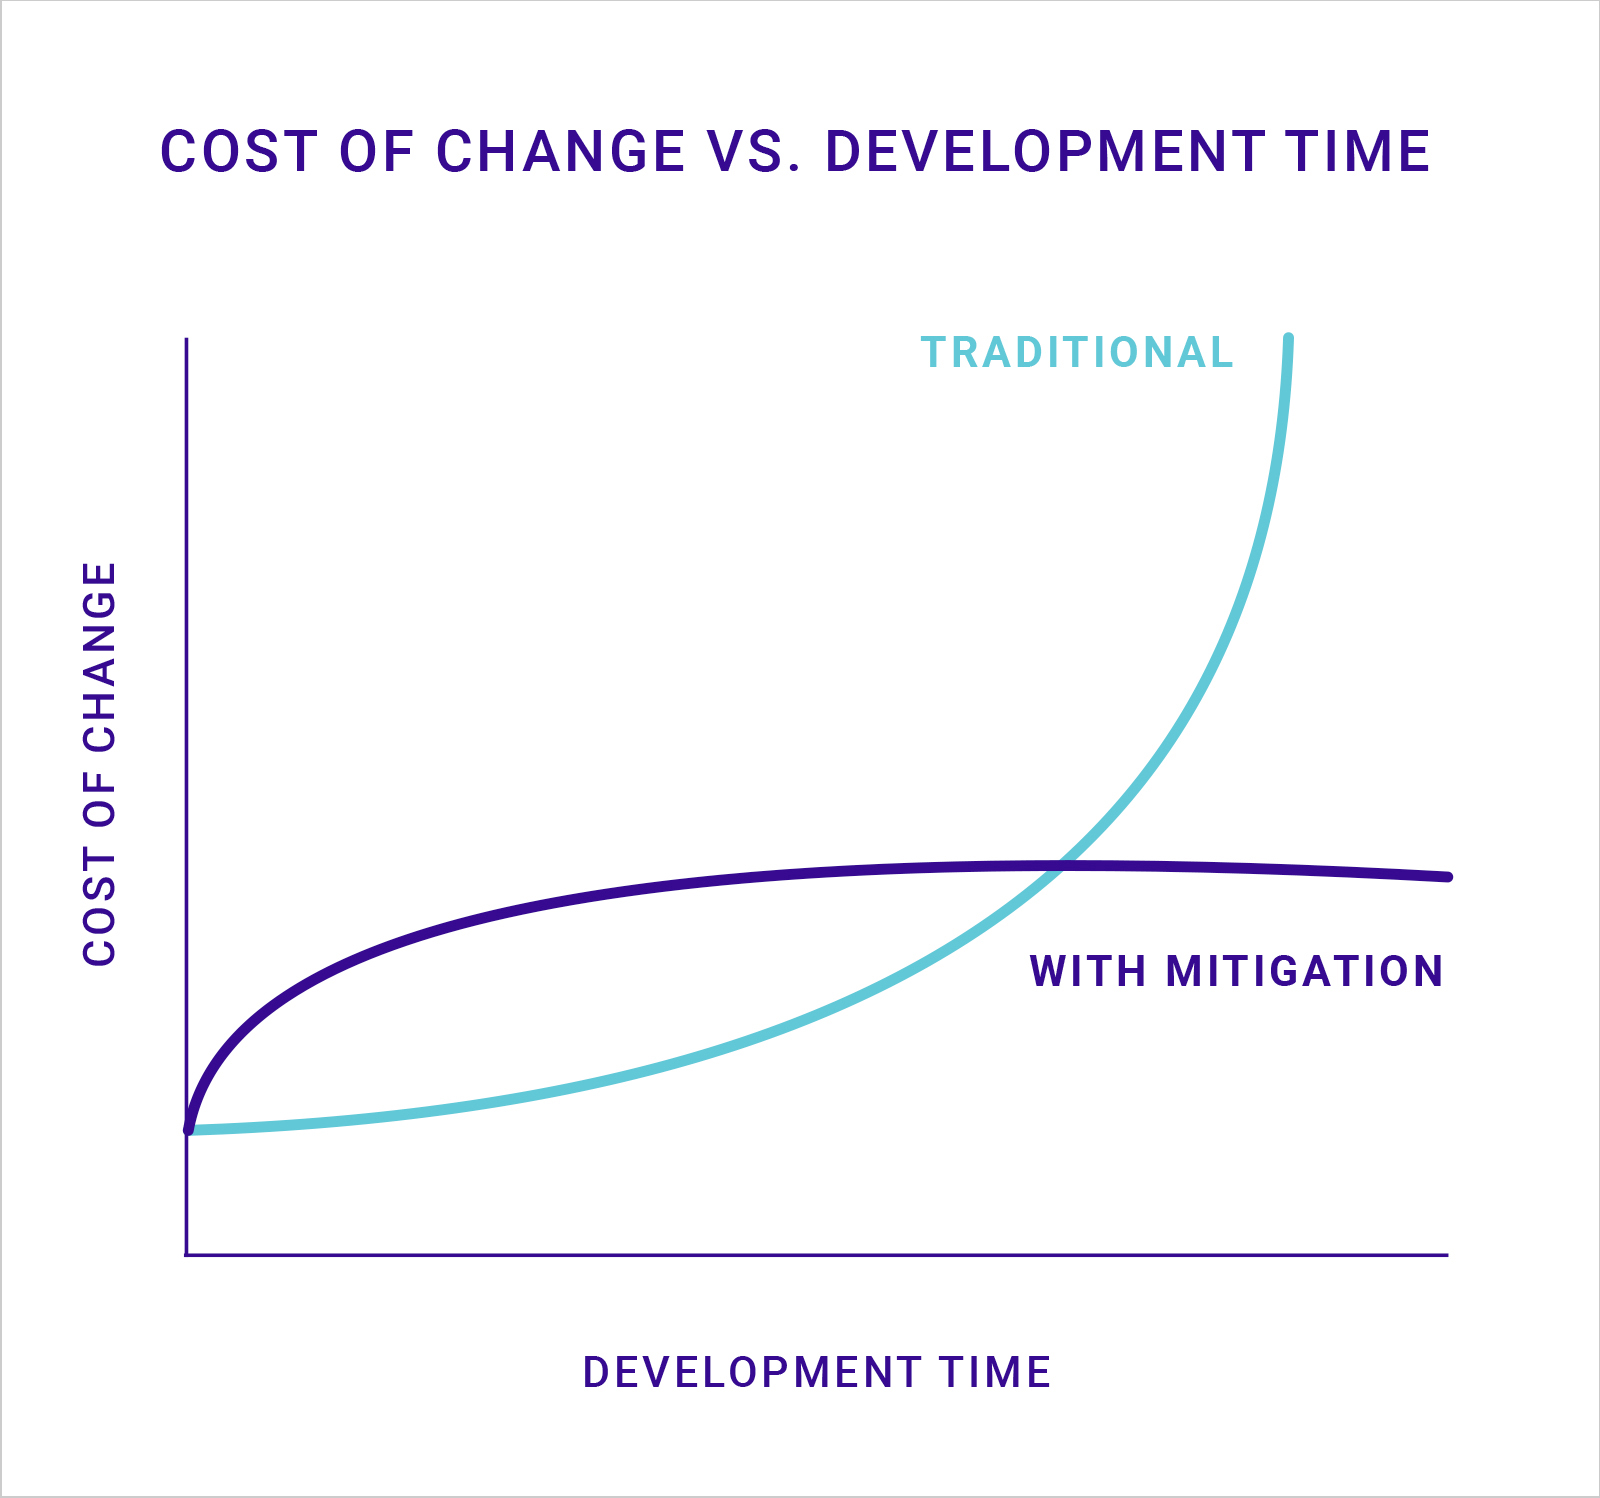 Cost of Change - Development Time